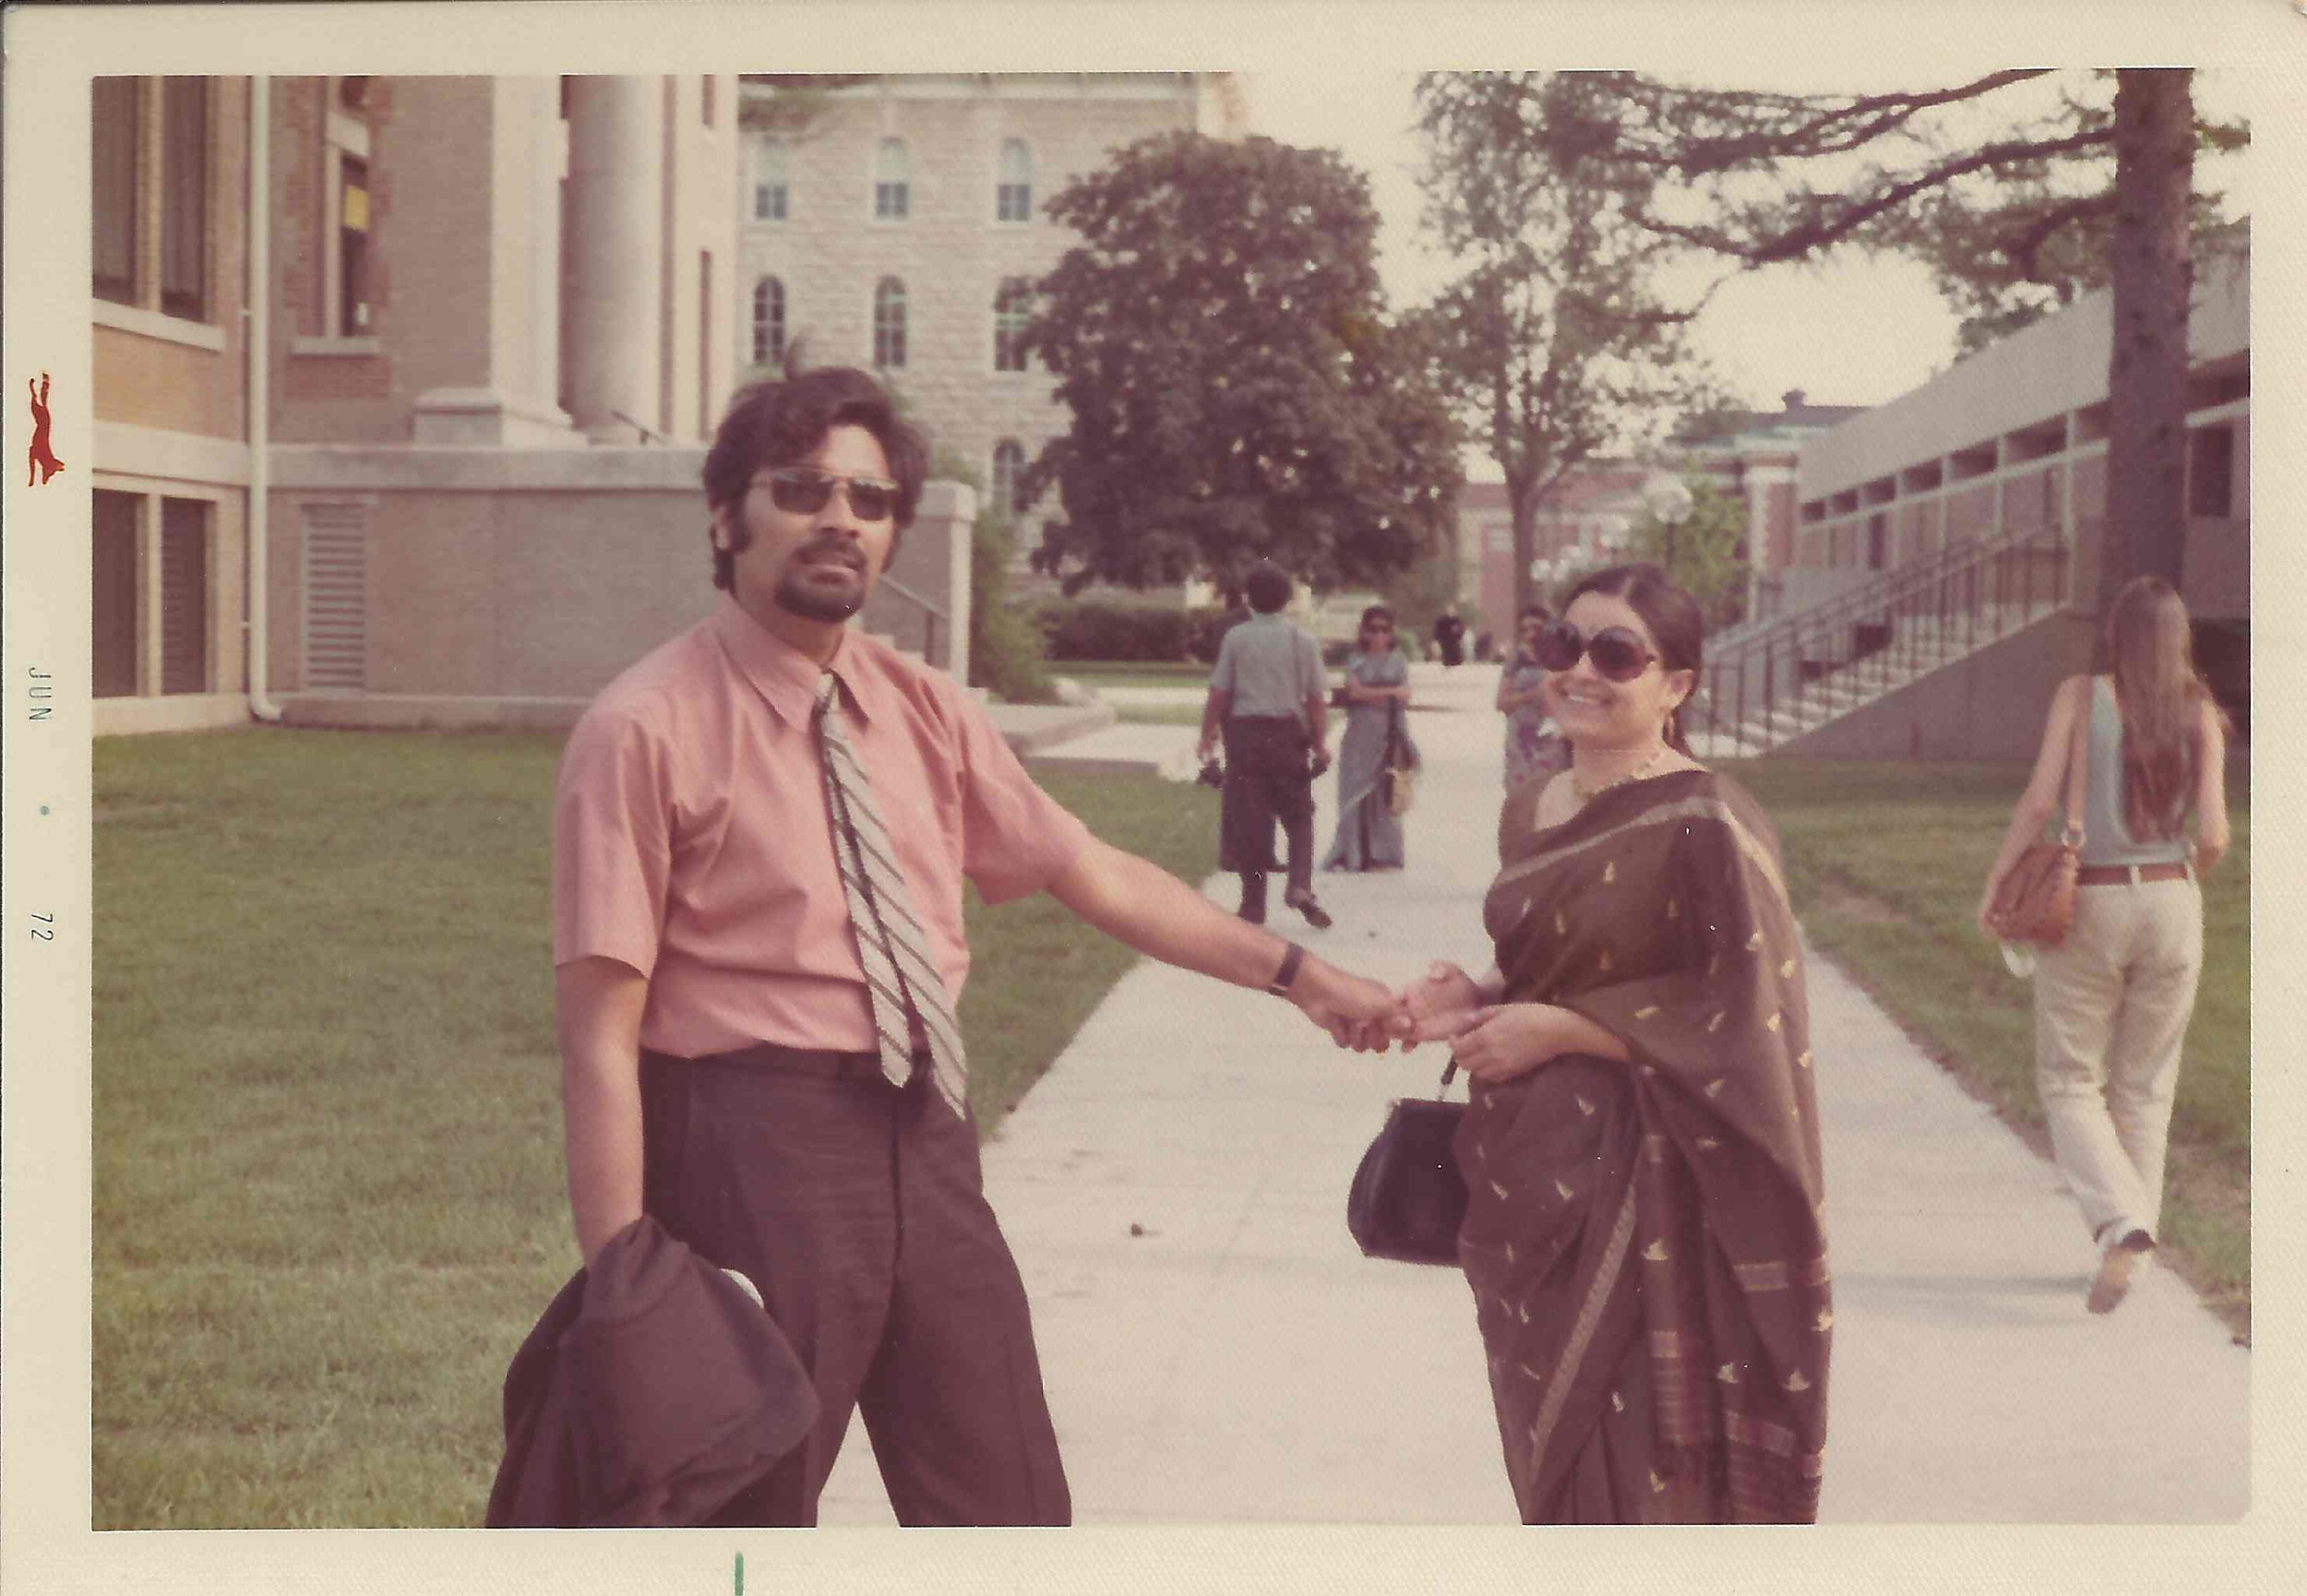 Sam and Anu at college campus, 1972